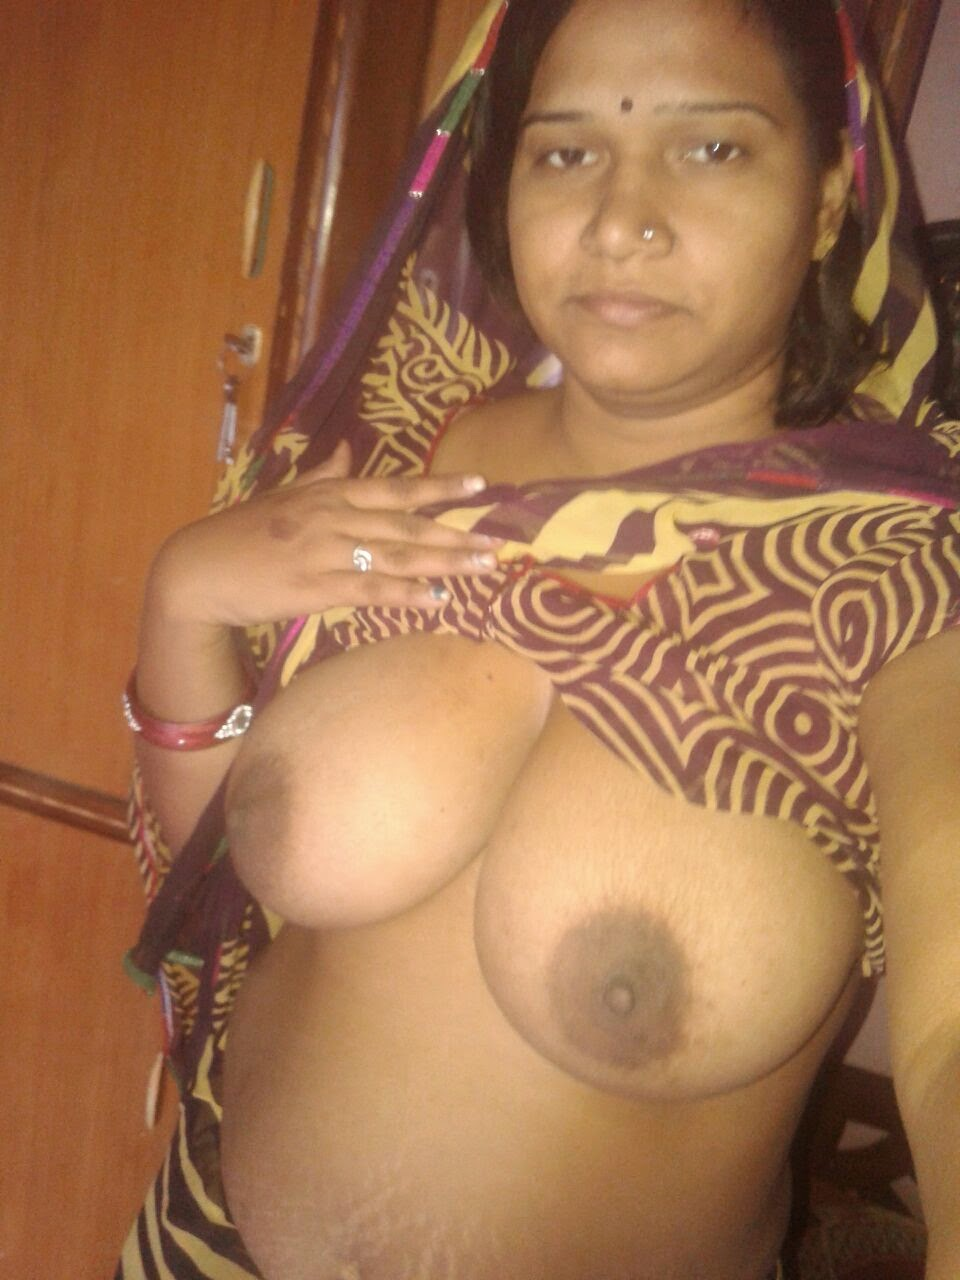 desi panty showing